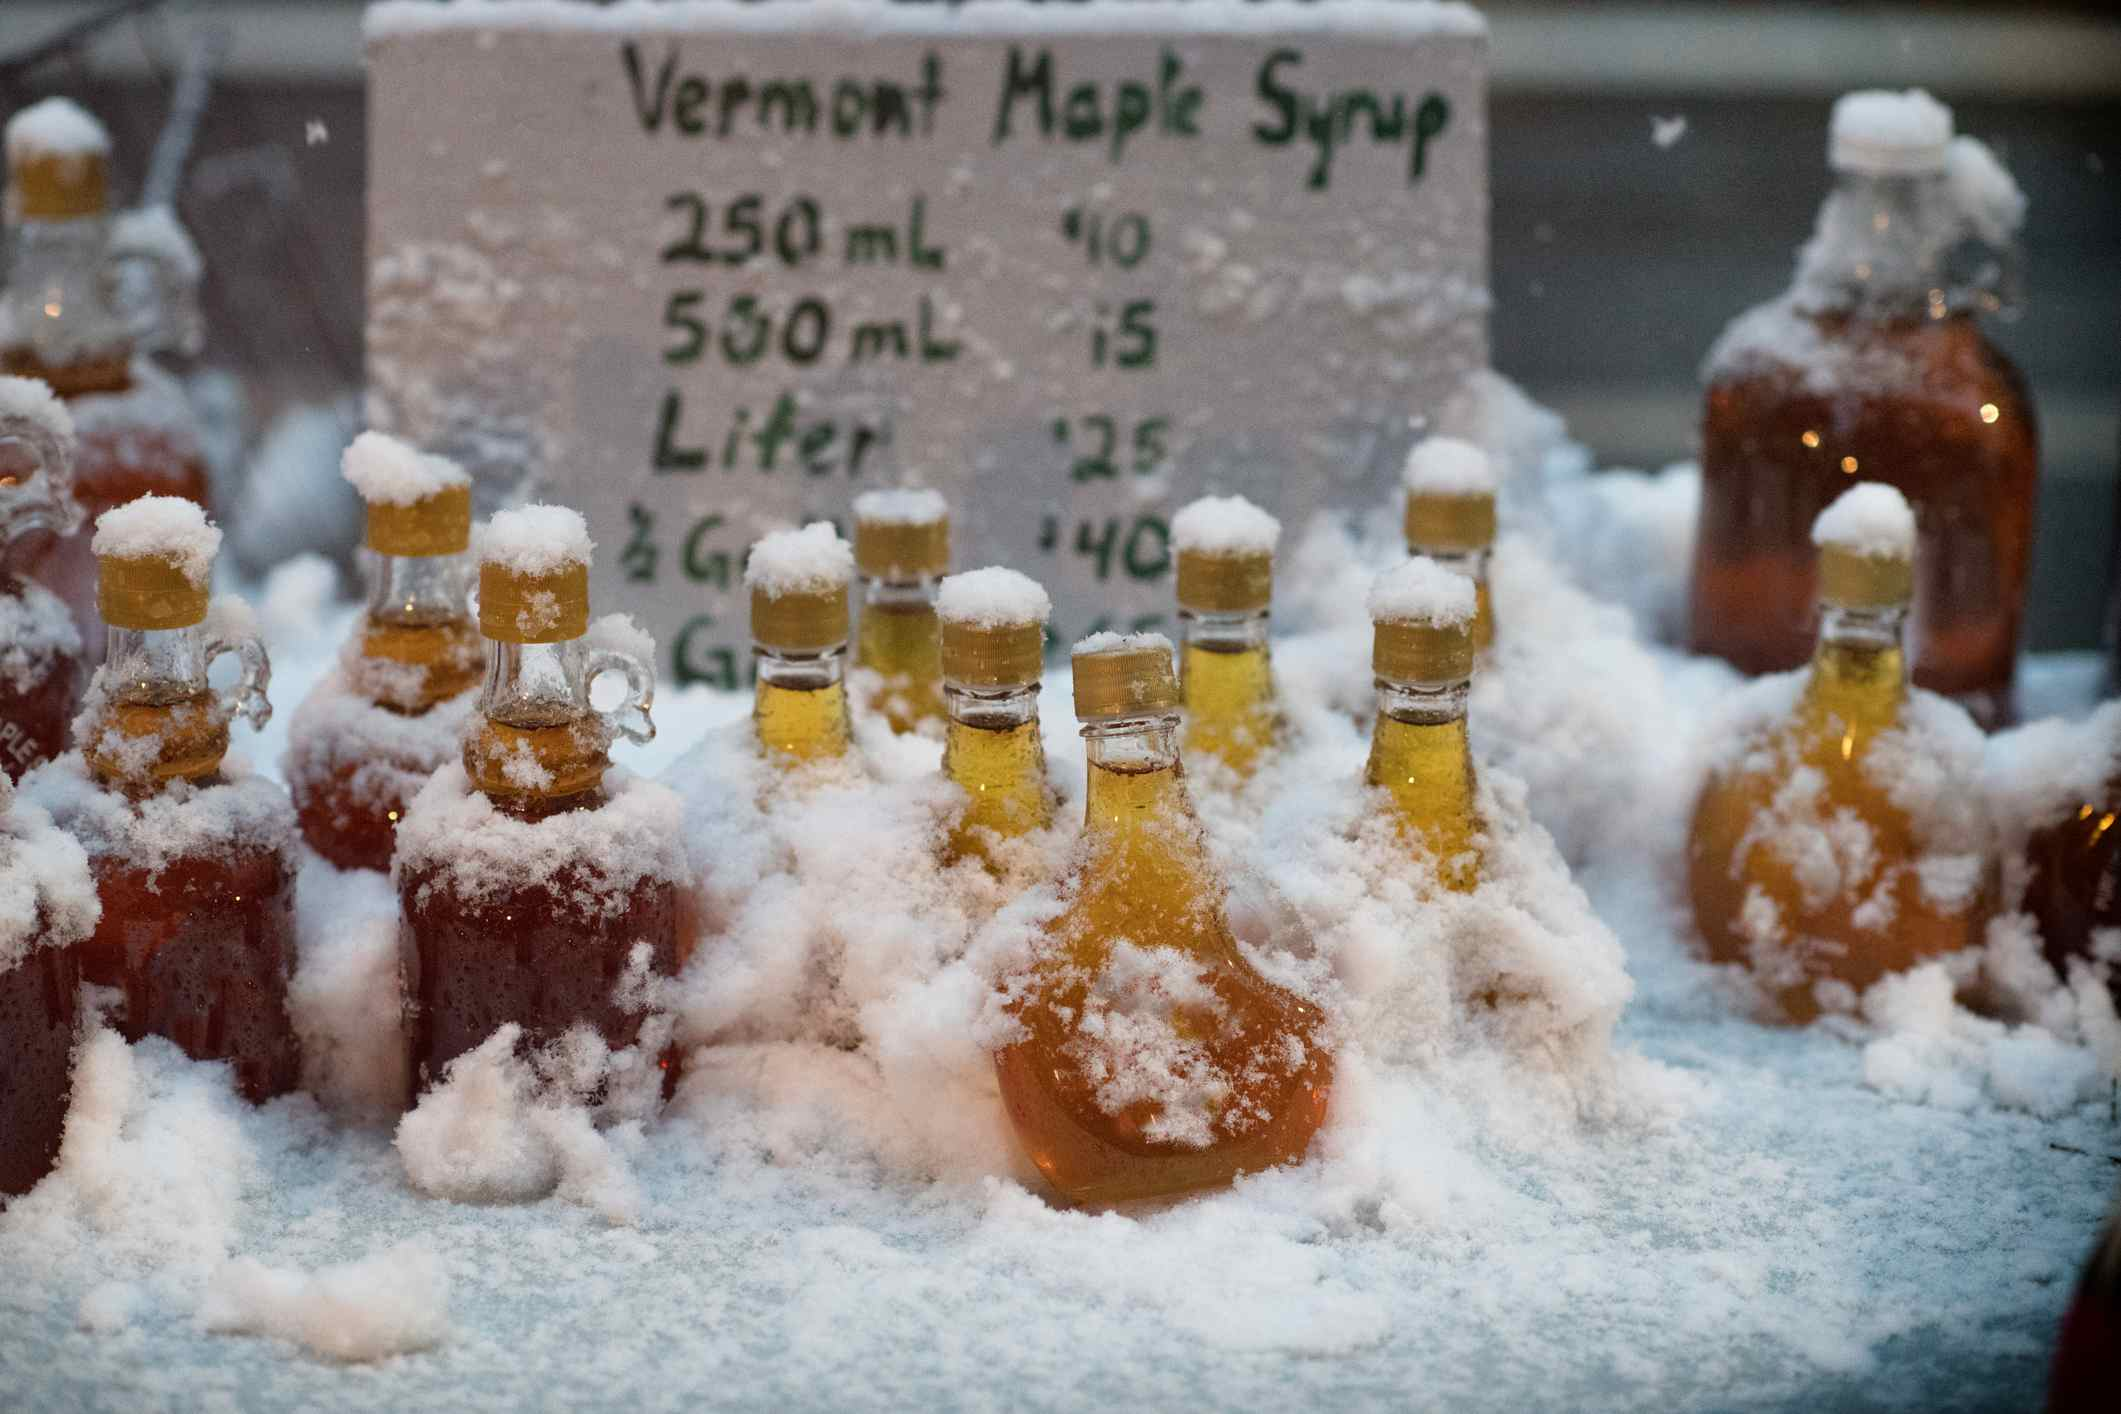 An out door stand selling Vermont Maple syrup in winter